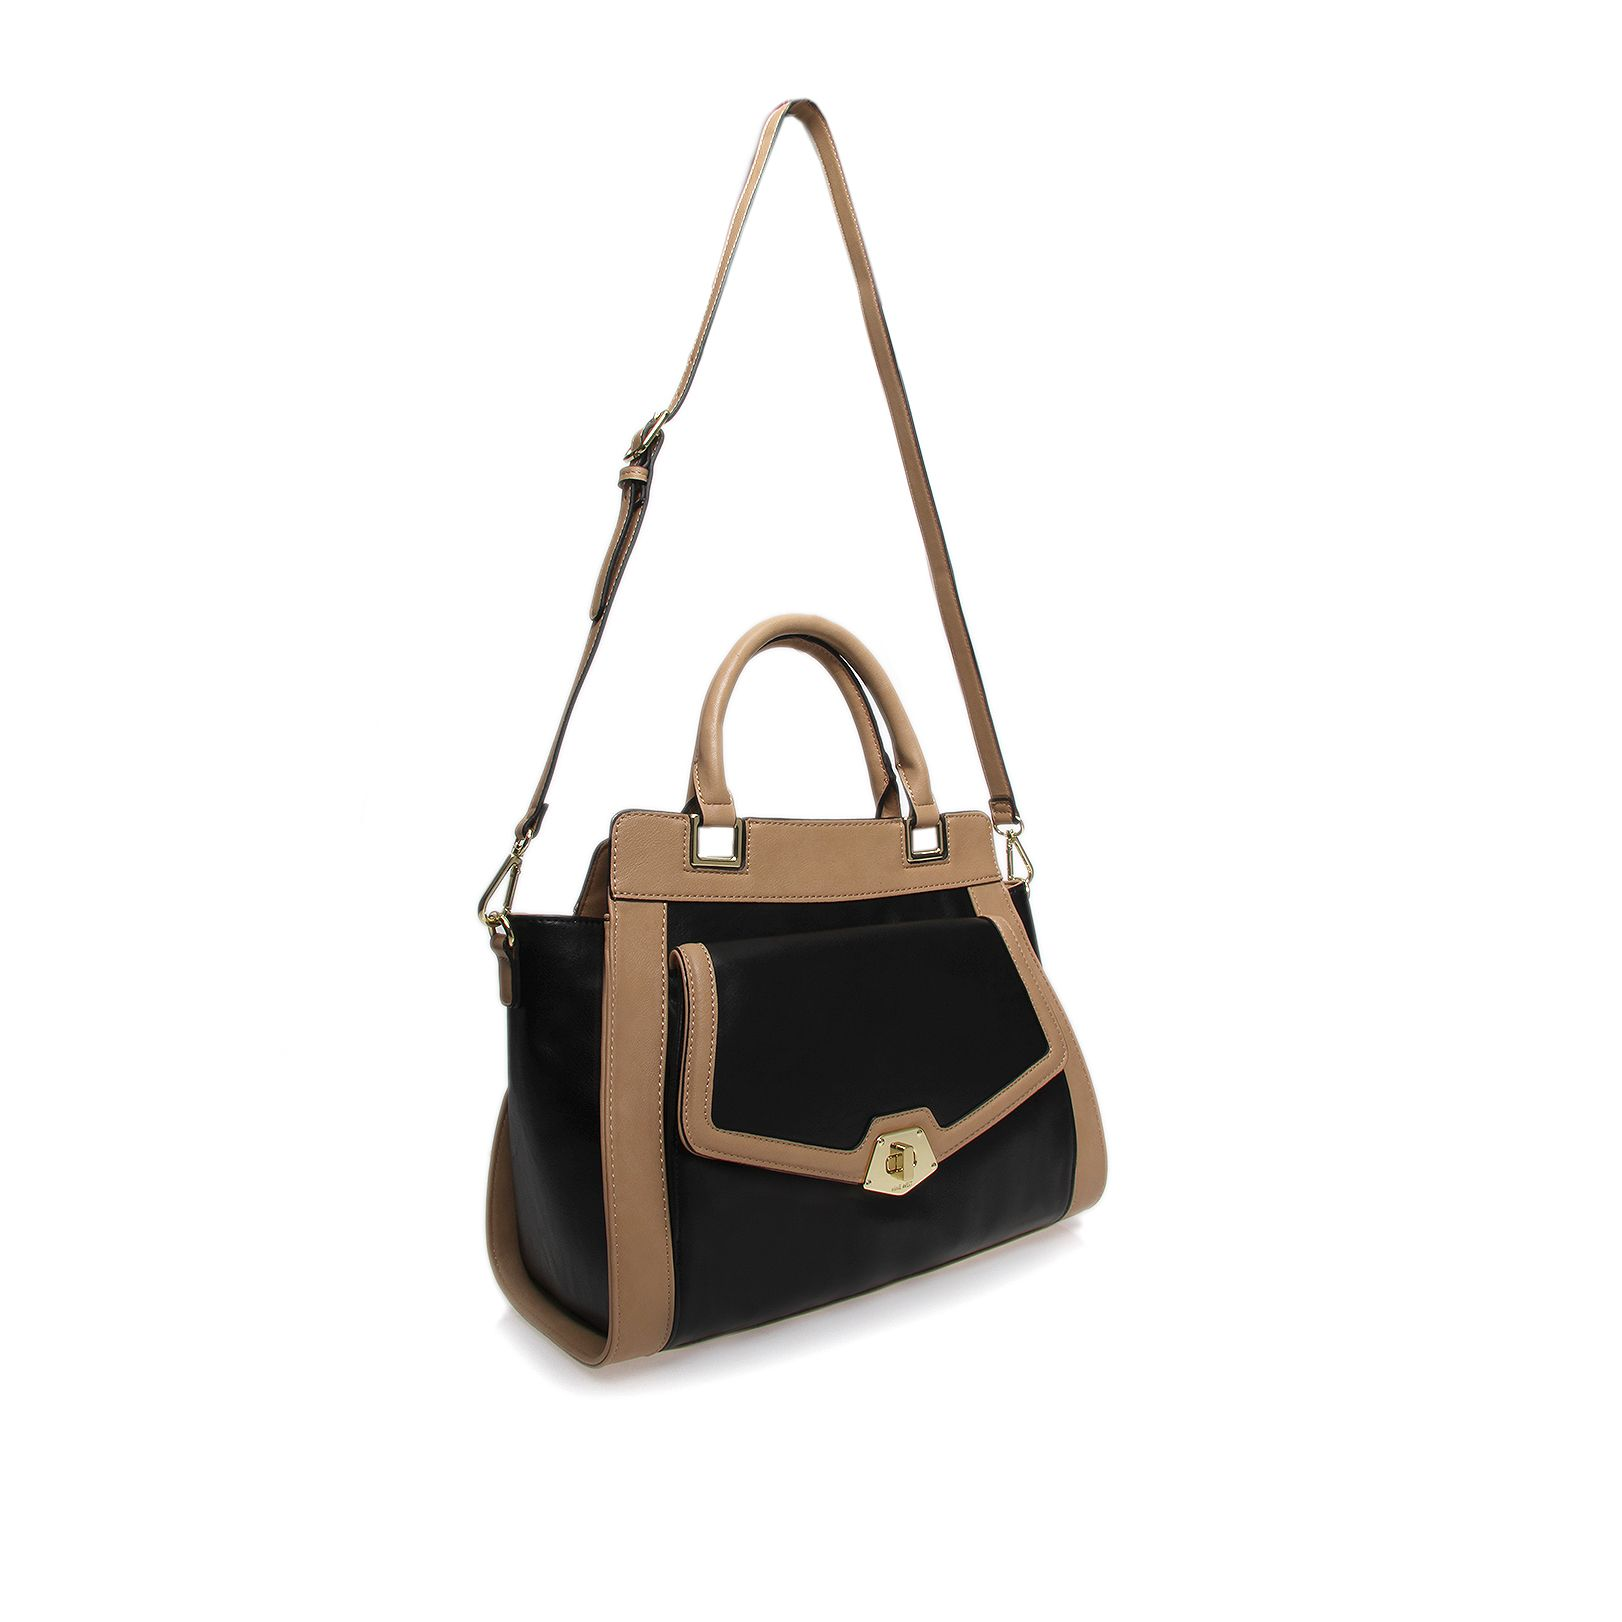 Sadie black satchel